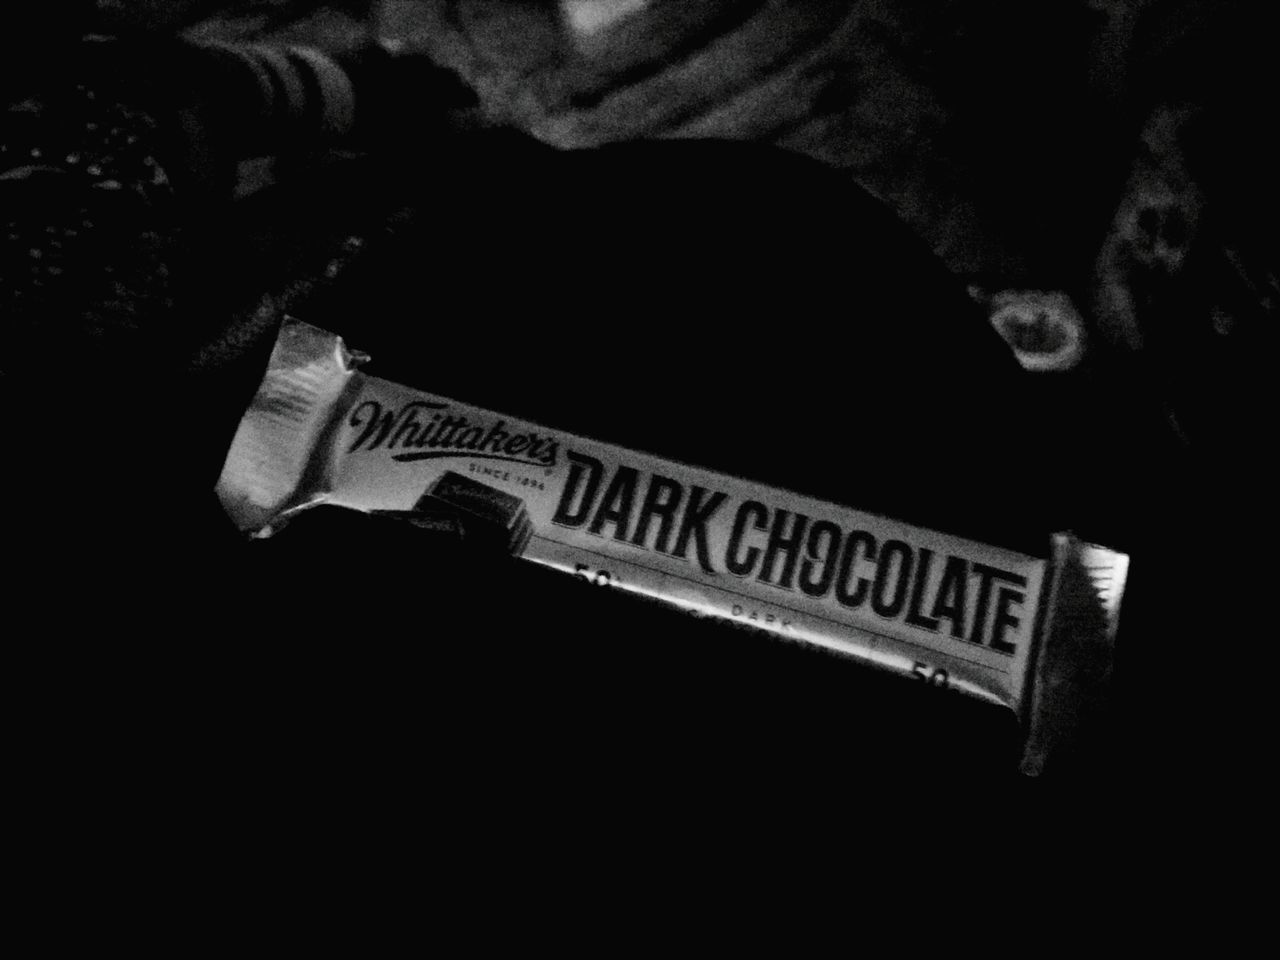 Dark chocolate Snack Temptation Food And Drink Ready-to-eat Choclate Dark Chocolate ♥ Chocolates Whittakerschocolate Monochrome Photography Monochrome